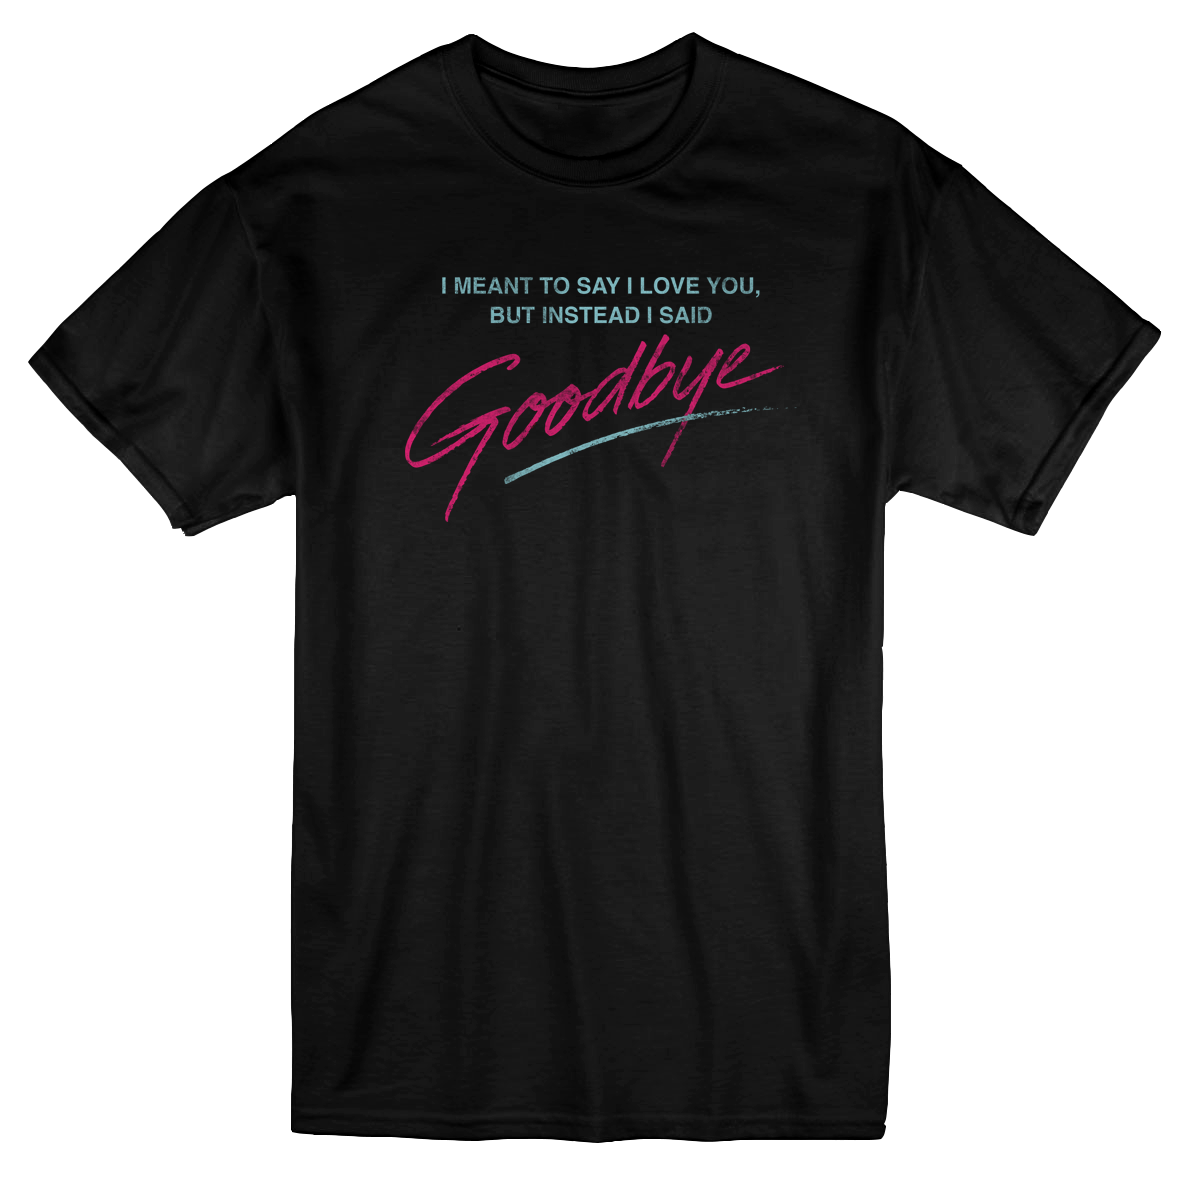 TheMidnight_T-Shirt3.png